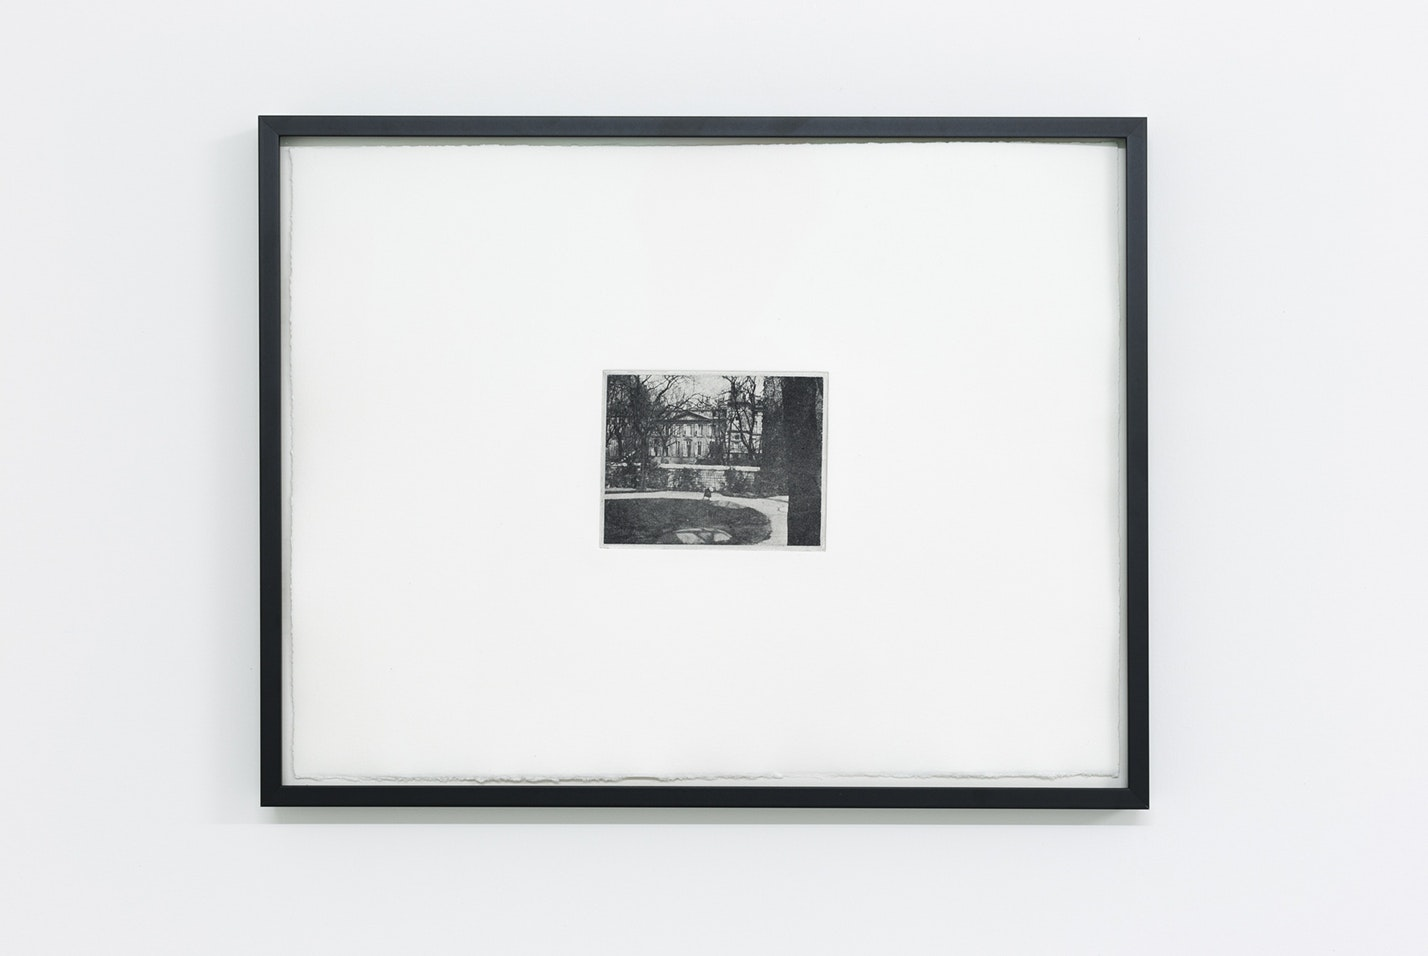 *110 rue du Bac*, photopolymer prints on paper, framed. Photographer and date of creation unknown. Reproduced to scale, by permission of the University of Glasgow Library, Special Collections, 2017. Photo by Tom Nolan.